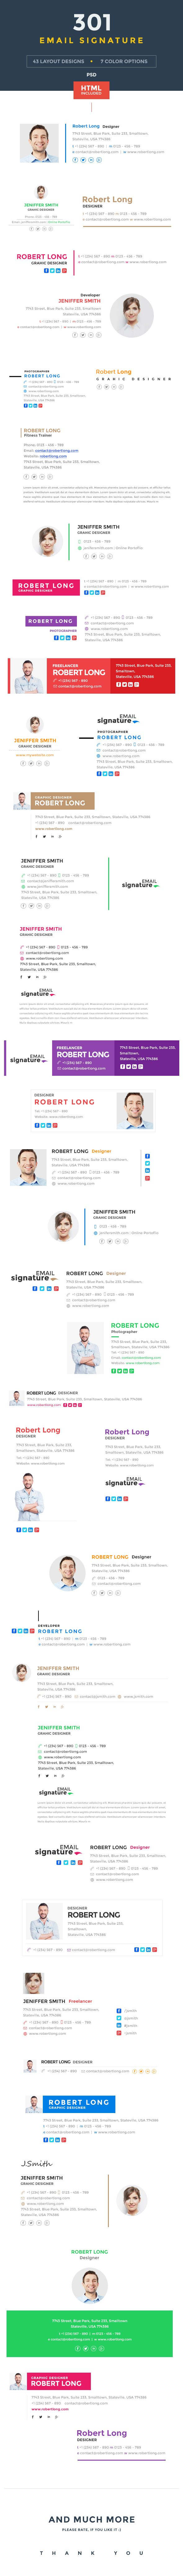 Set of 301 Creative, Modern & Professional Email Signatures for your Business & Personal use. It allow you to customize your email signature with your logo, social profile, you can easily change its text & color from html as well as photoshop.  Here we providing 301 html & psds with 43 layout designs & 7 color variations : Blue, Red, Green, Purple, Yellow, Pink & Brown.